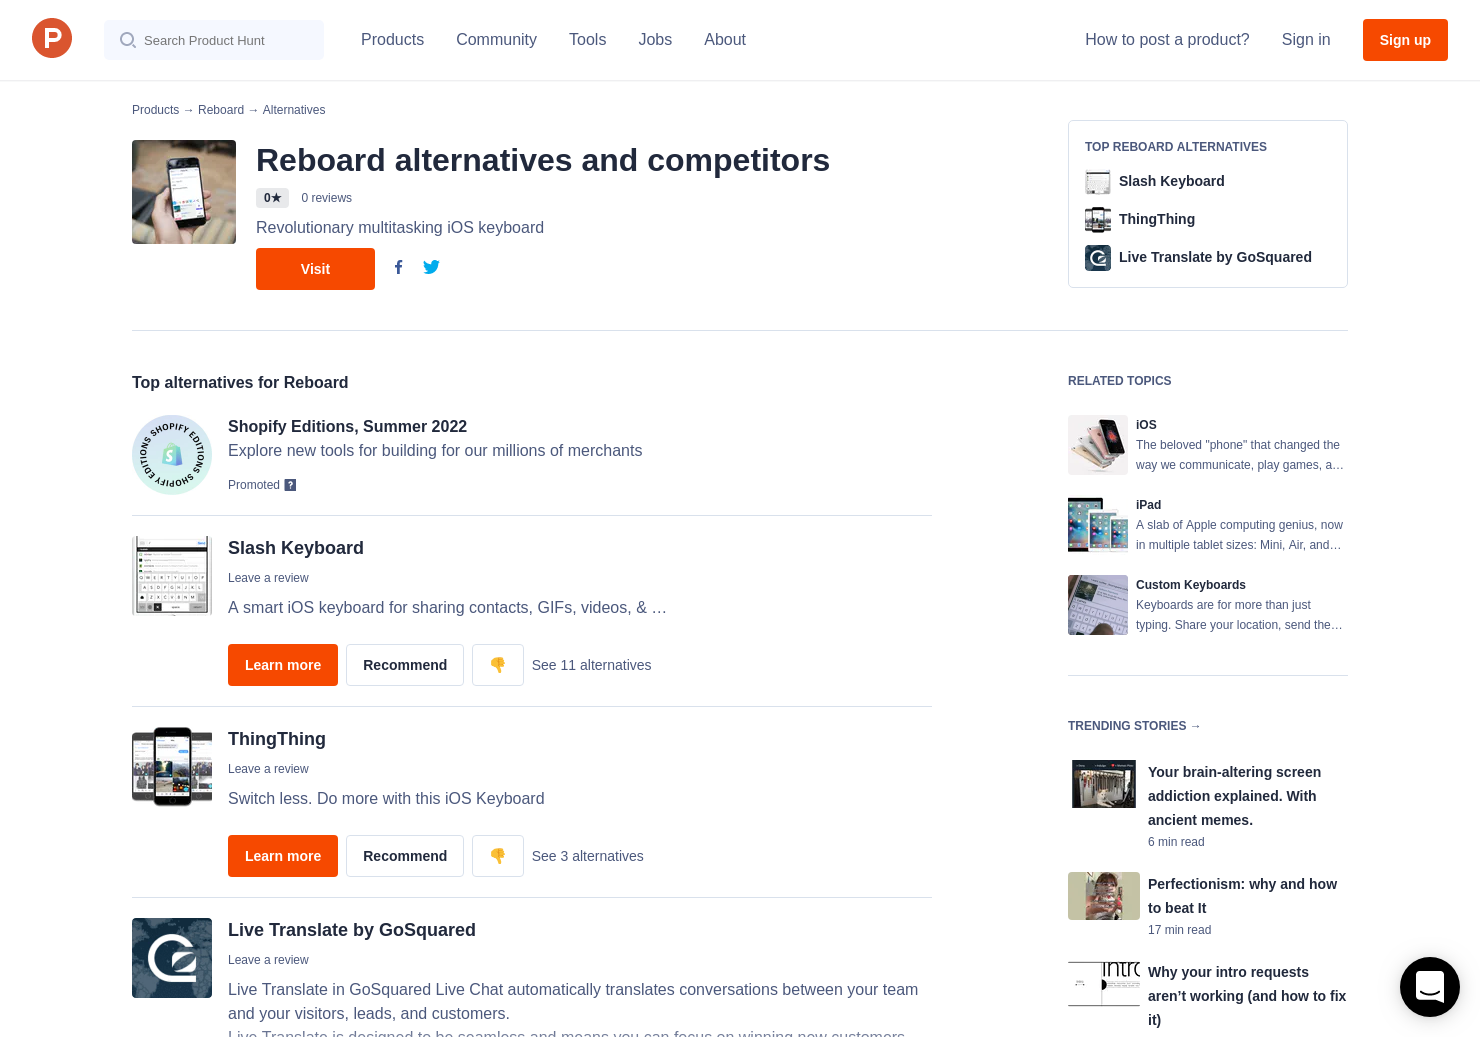 5 Alternatives to Reboard for iPhone, iPad | Product Hunt